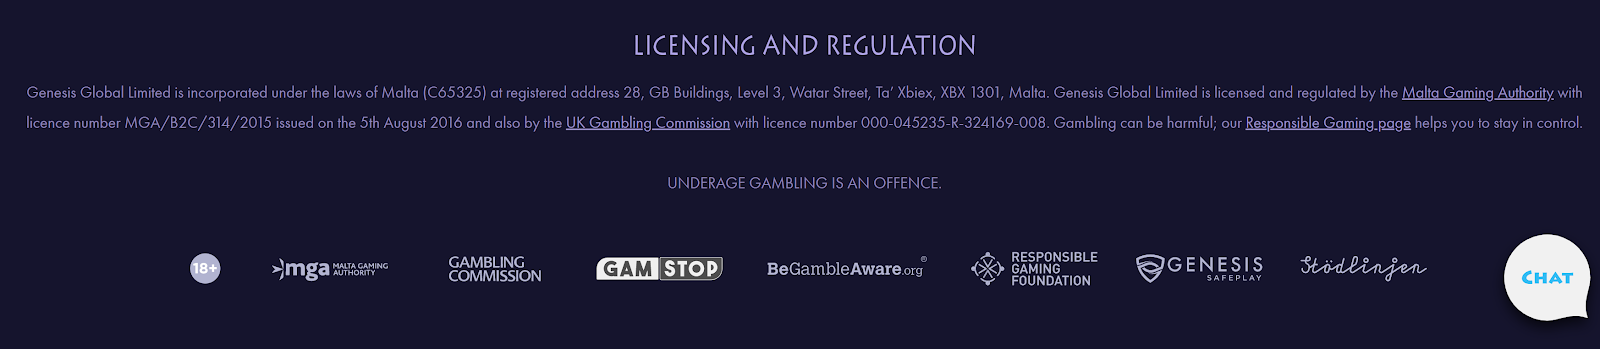 Casino Gods is regulated by the UK Gambling Commission